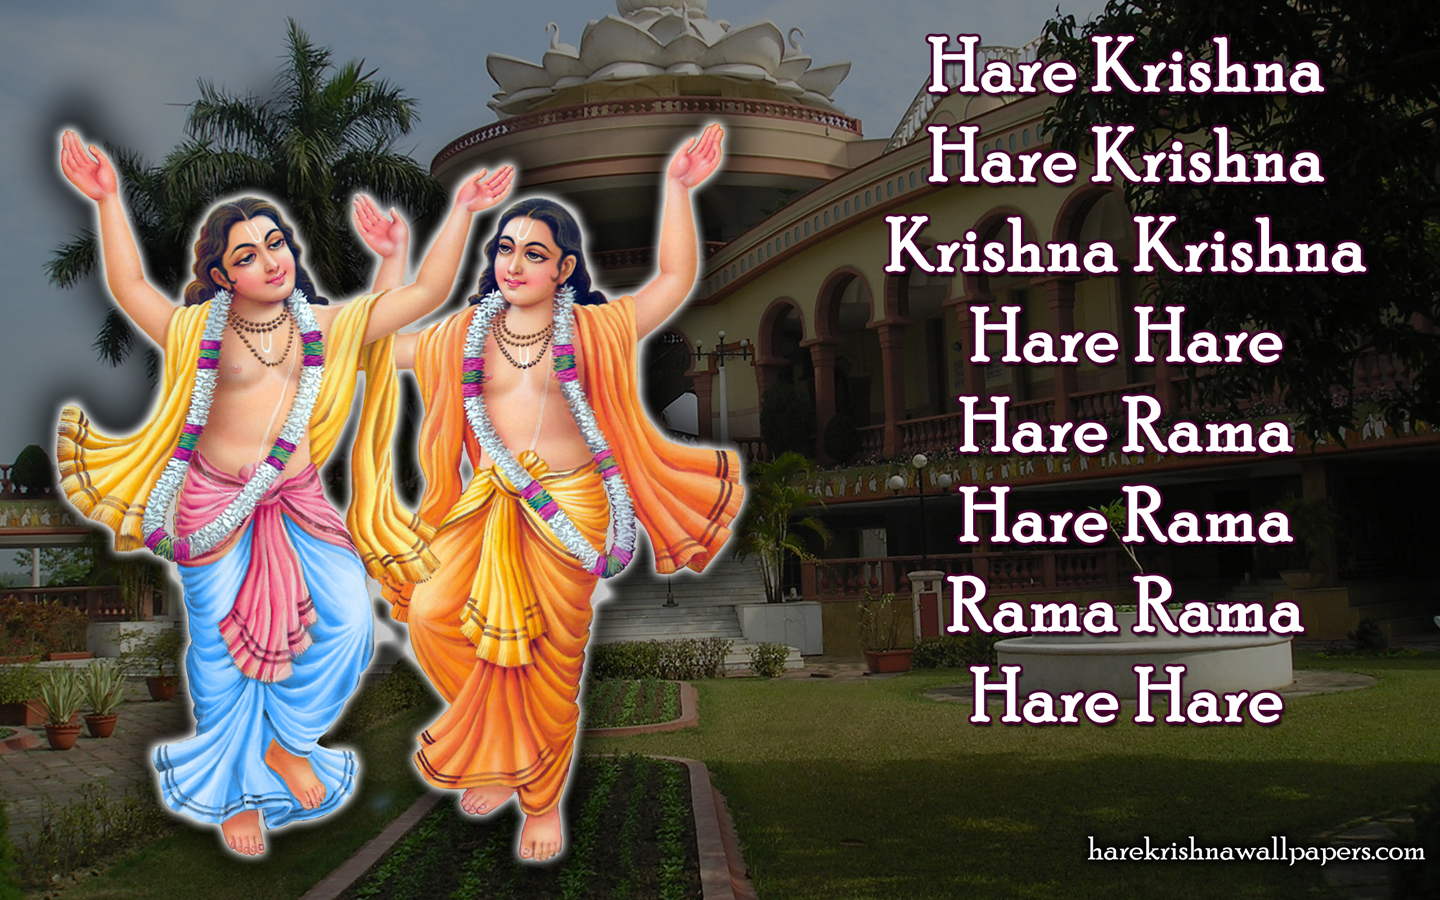 a recollection of my religious experience at the hare krishna farm Has anyone ever had visions/encounters/experiences of hindu gods hare-krishna #61 aupmanyav, dec 6  it is certainly a deep religious experience.